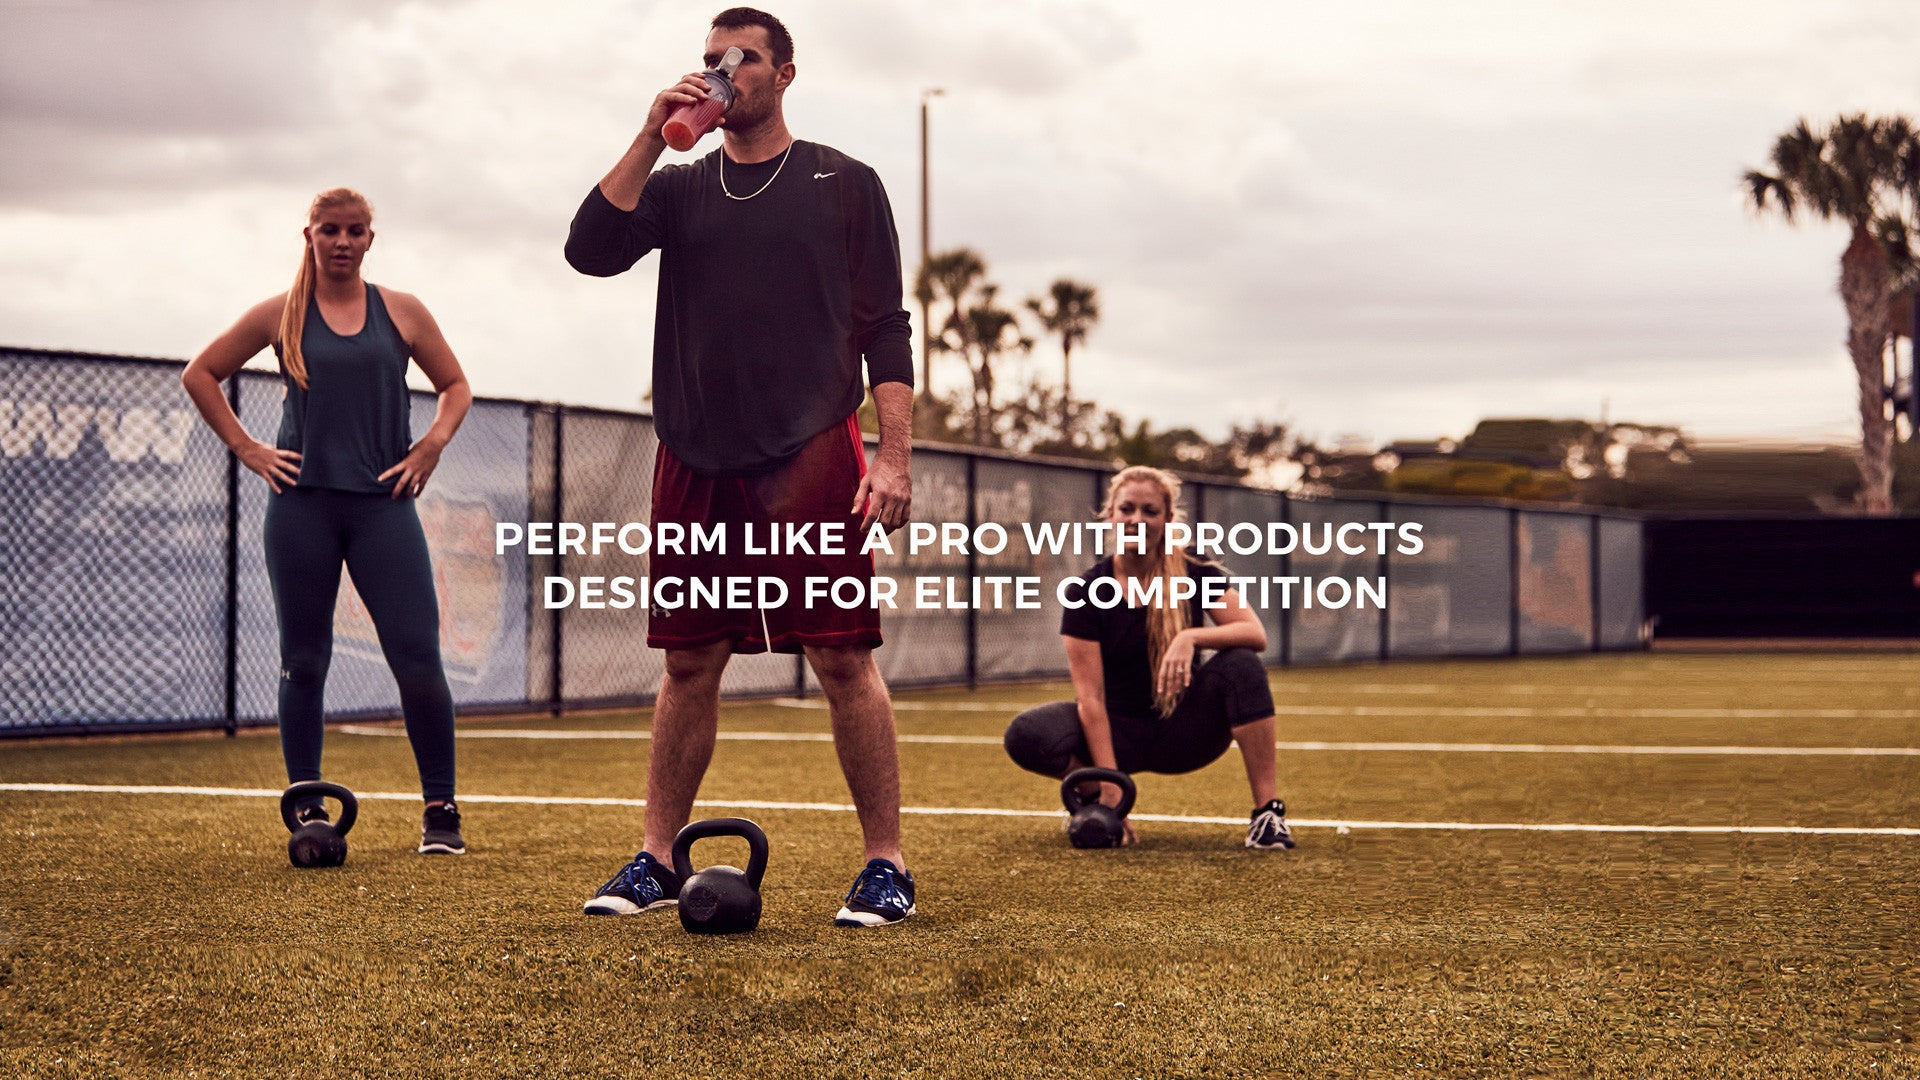 Athletes Alexandra Vandegrift, Jayce Boyd (NY Mets first basemen), and Jade Wright building lean muscle mass on the field with Barwis Nutrition